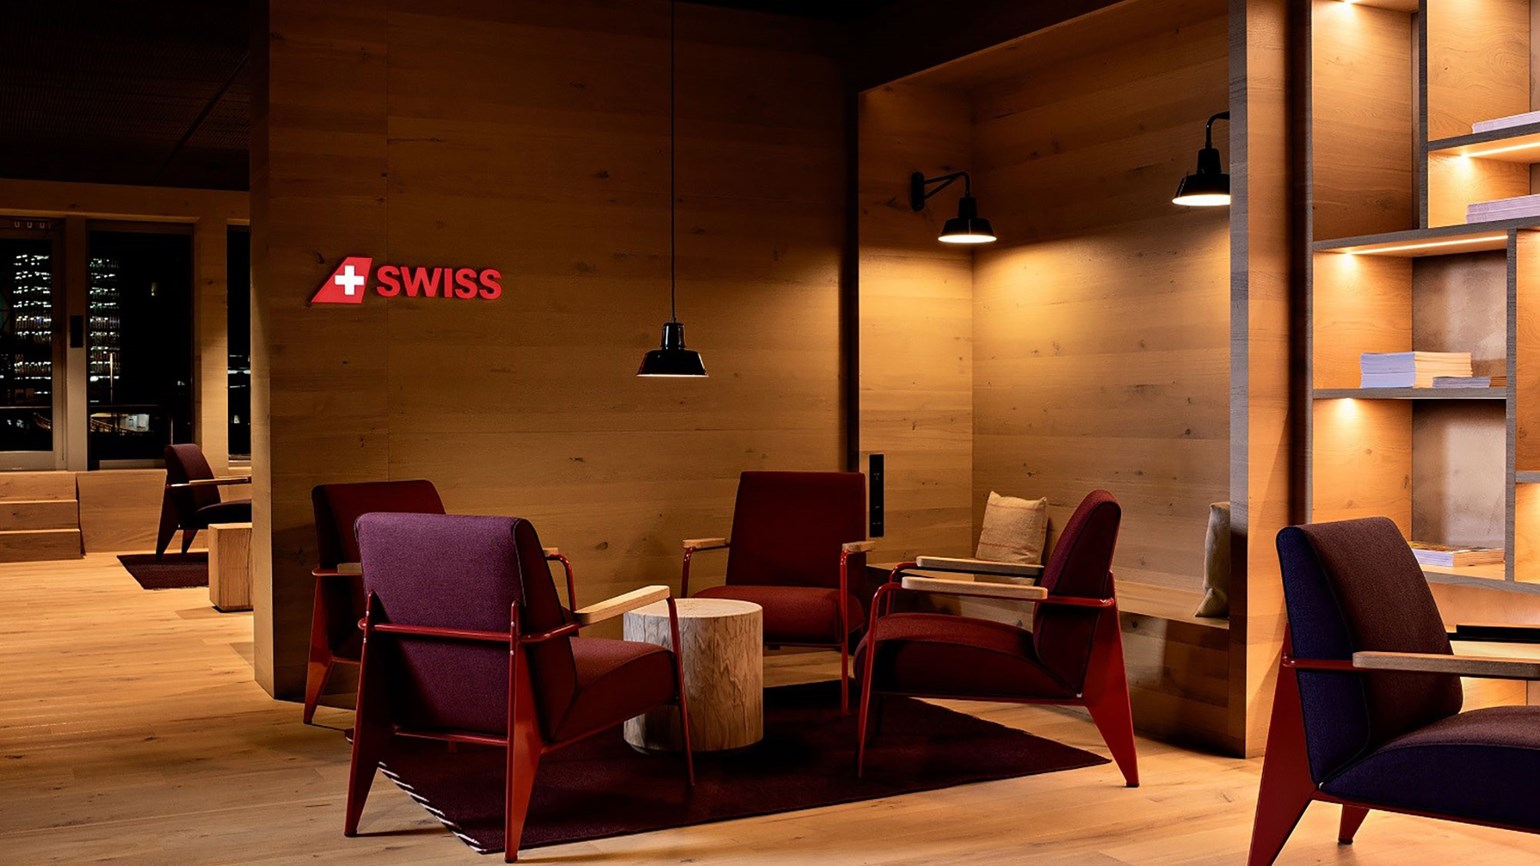 Swiss opens renovated lounge in Zurich Airport